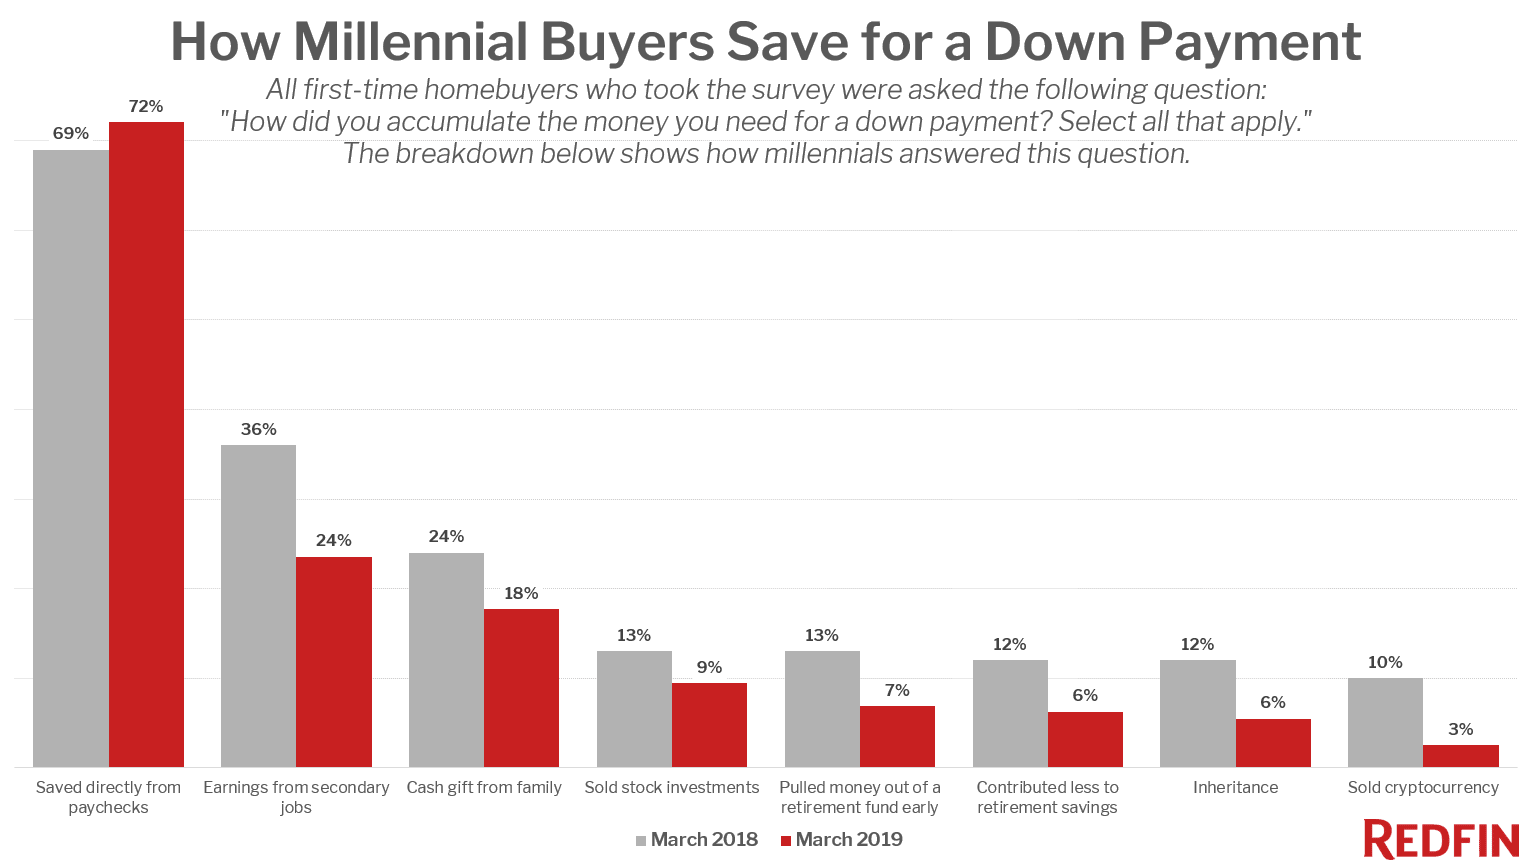 How Millennial Buyers Save for a Down Payment